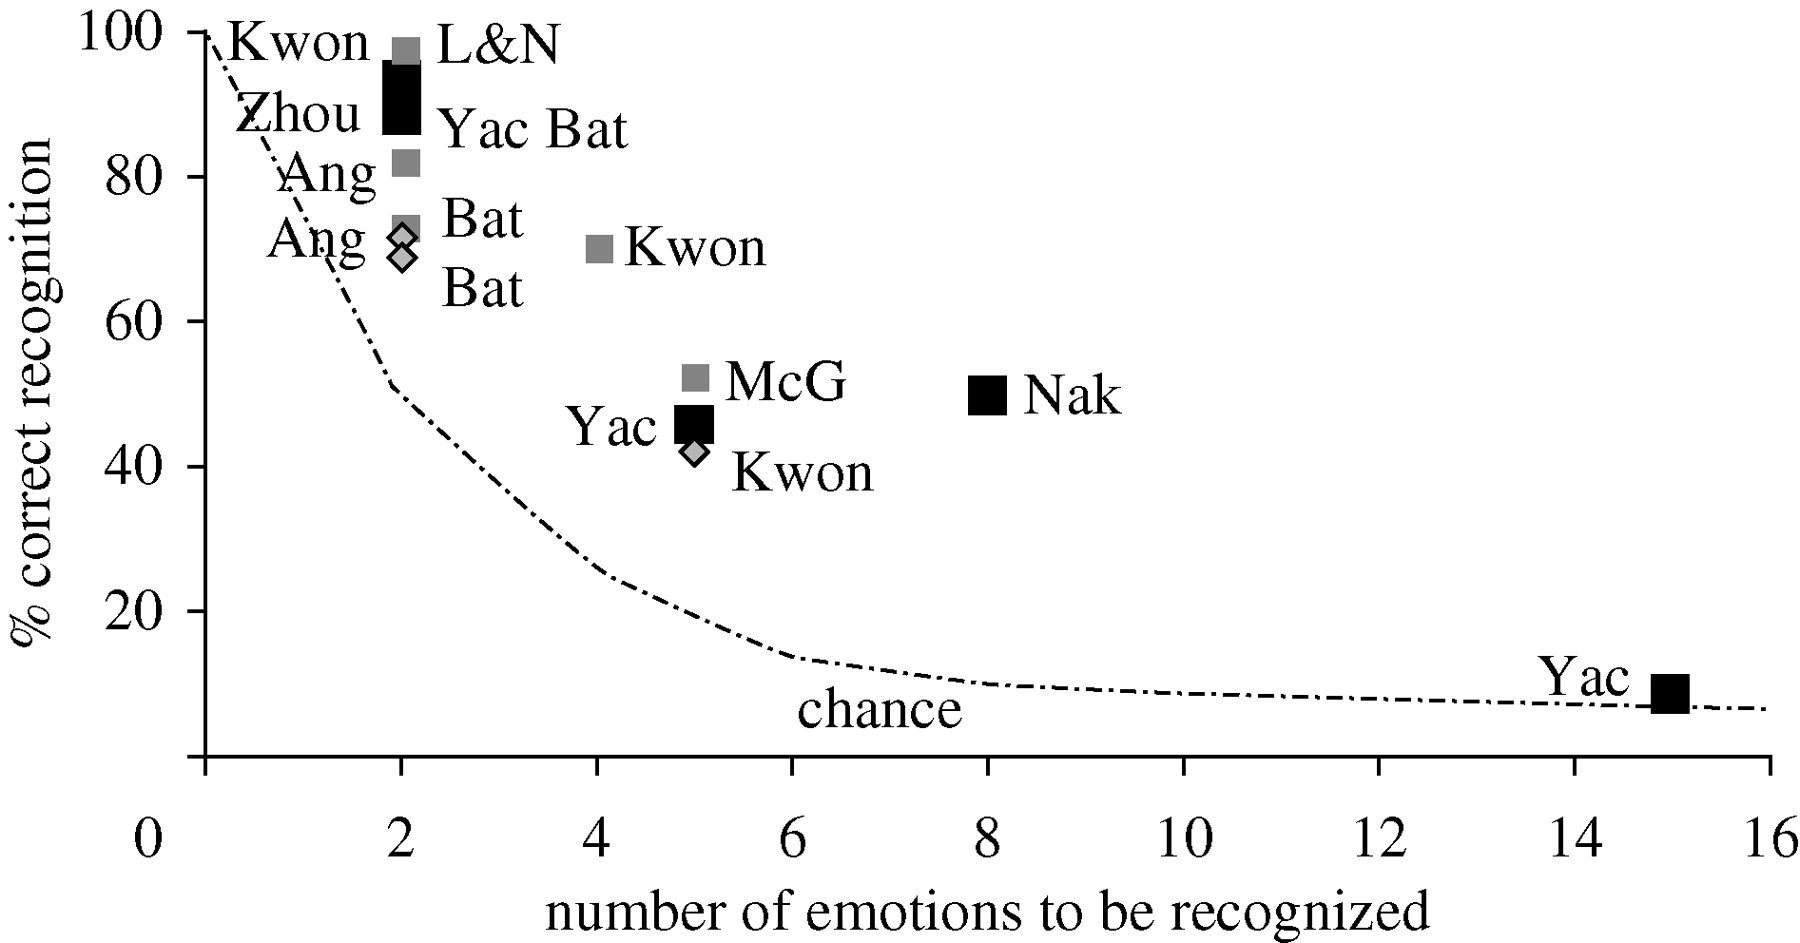 Perceiving emotion: towards a realistic understanding of the task